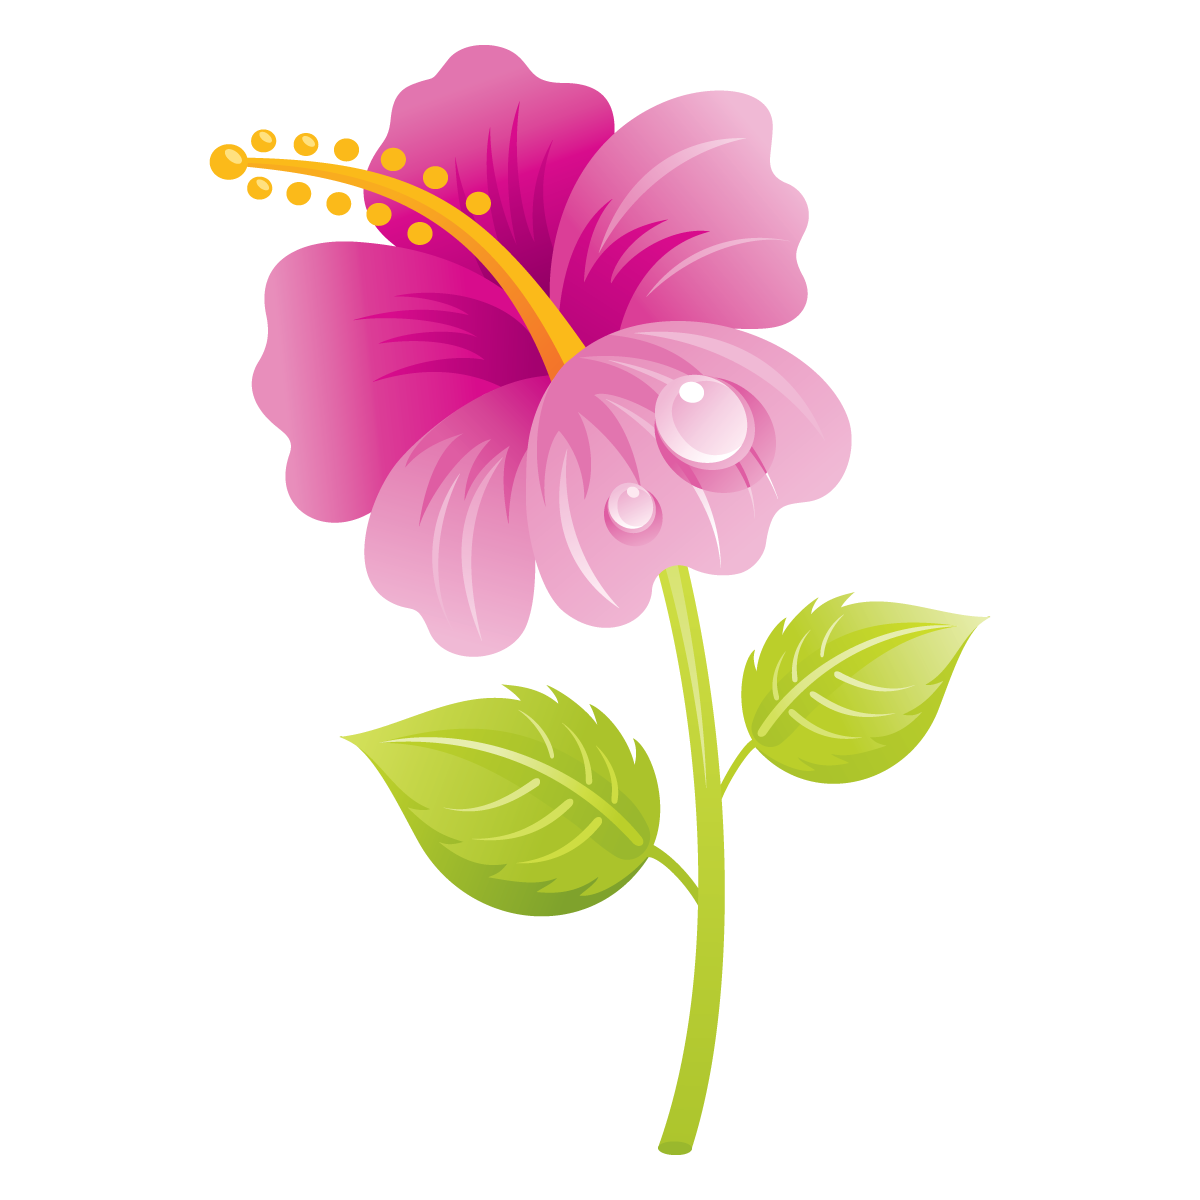 jpg freeuse download flowers png